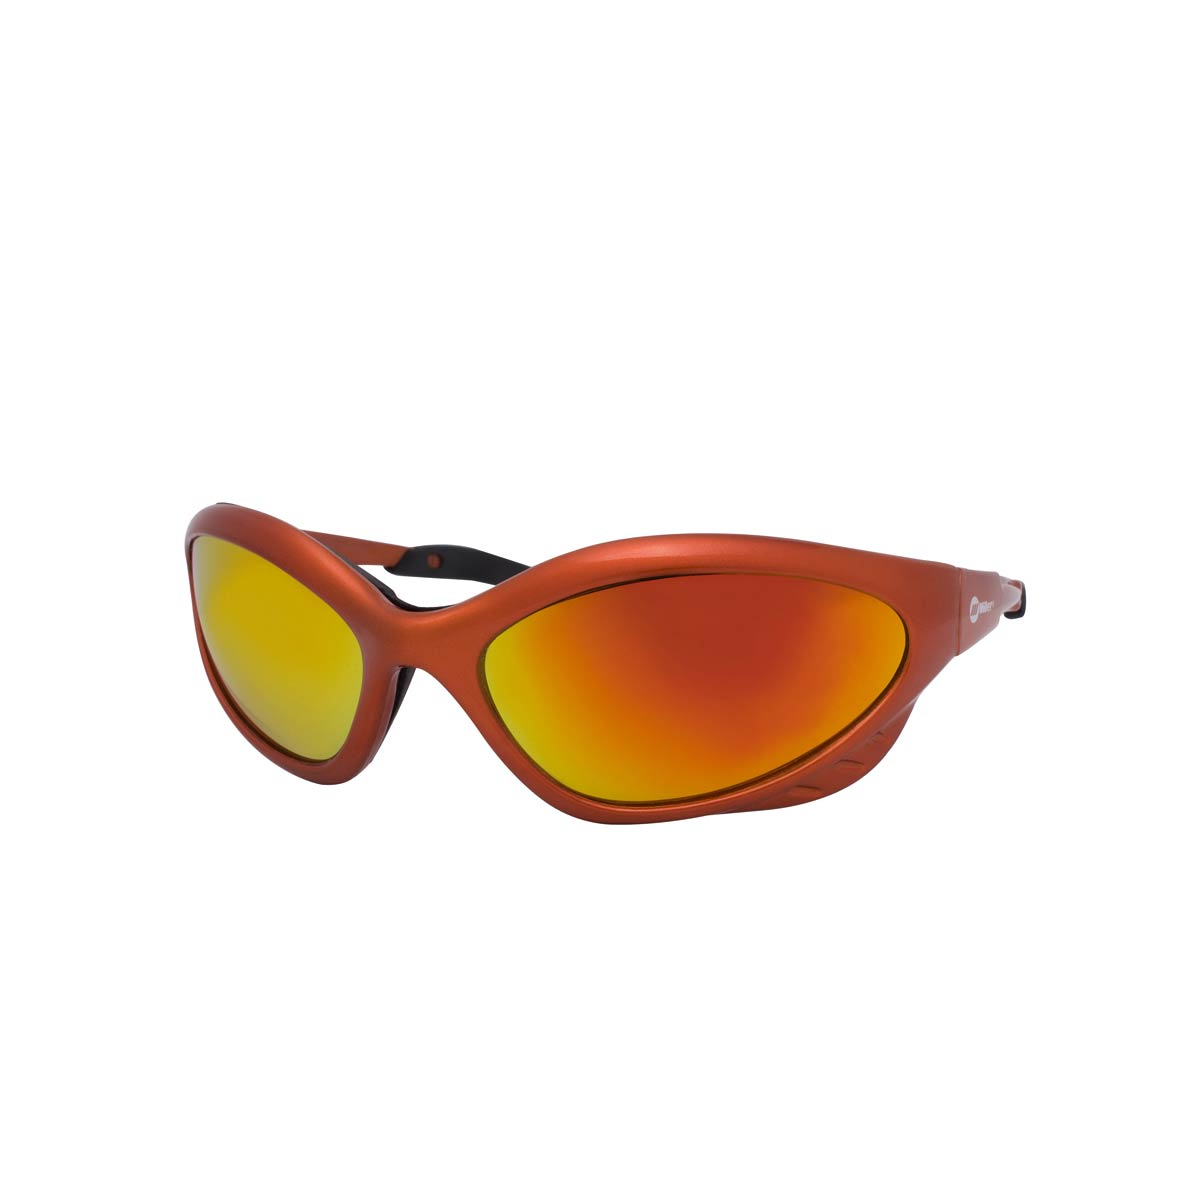 GLASSES SHADE 5/ORANGE FRAME. Part: 235659. Pack: 1